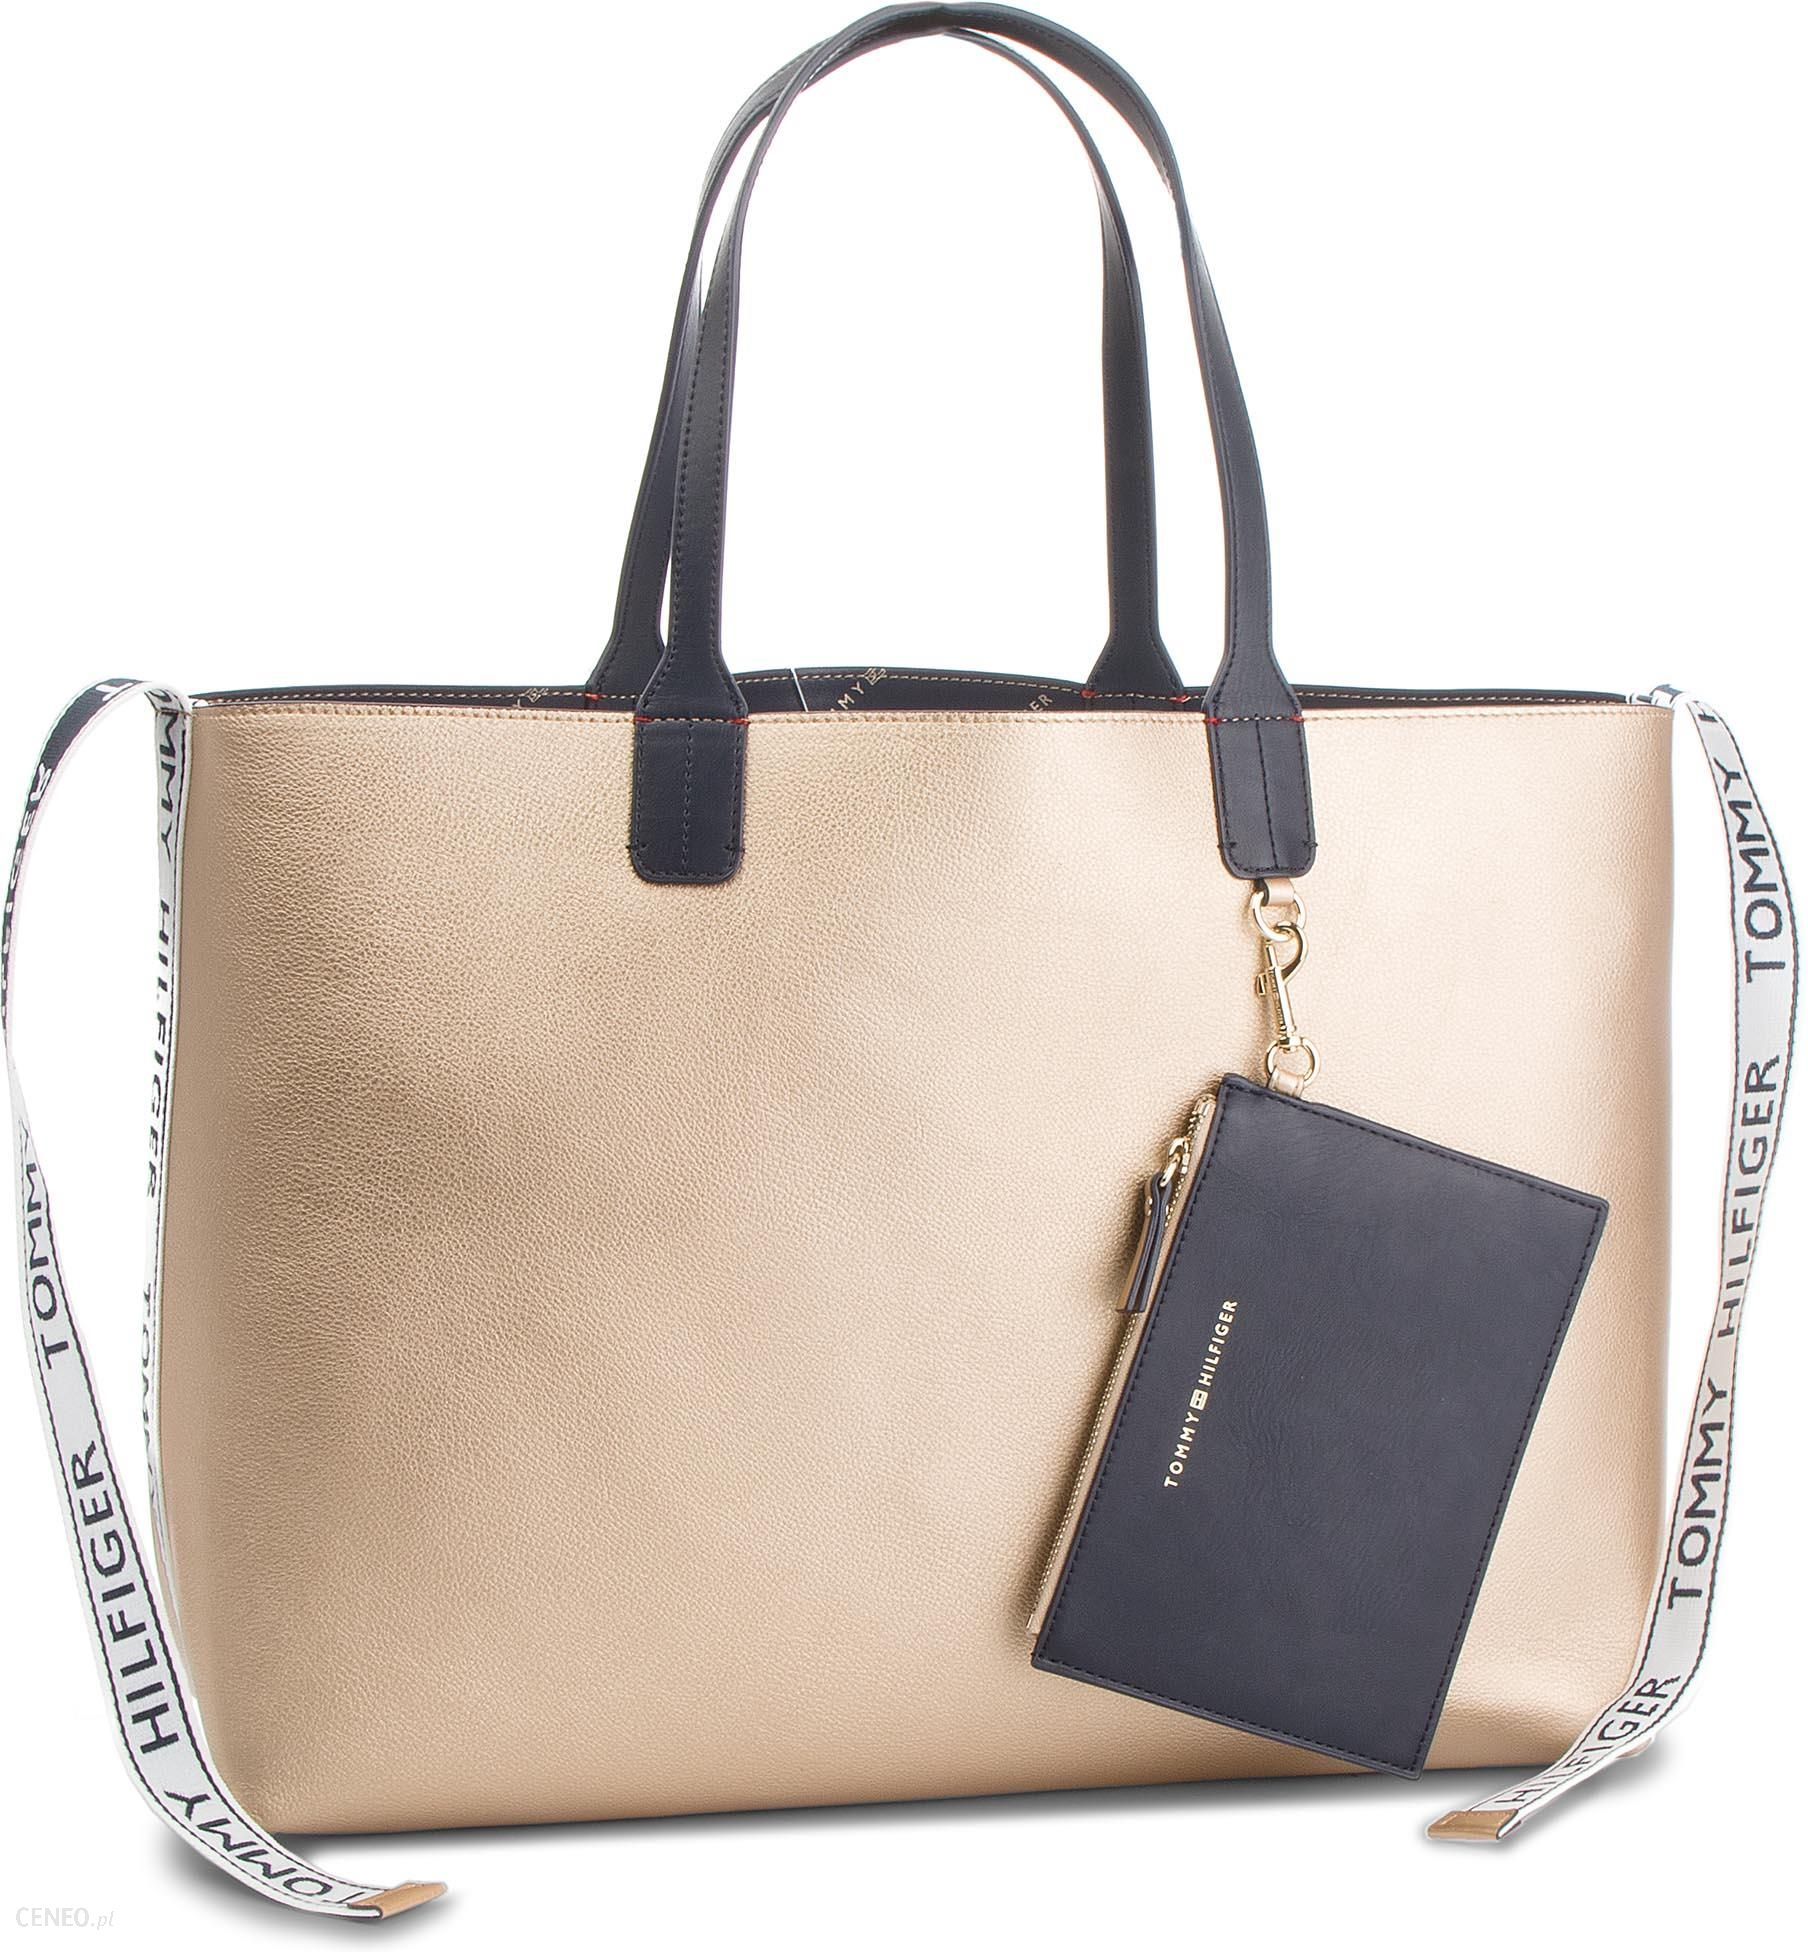 91be23db5ca7a Torebka TOMMY HILFIGER - Iconic Tommy Tote AW0AW05640 909 - Ceny i ...